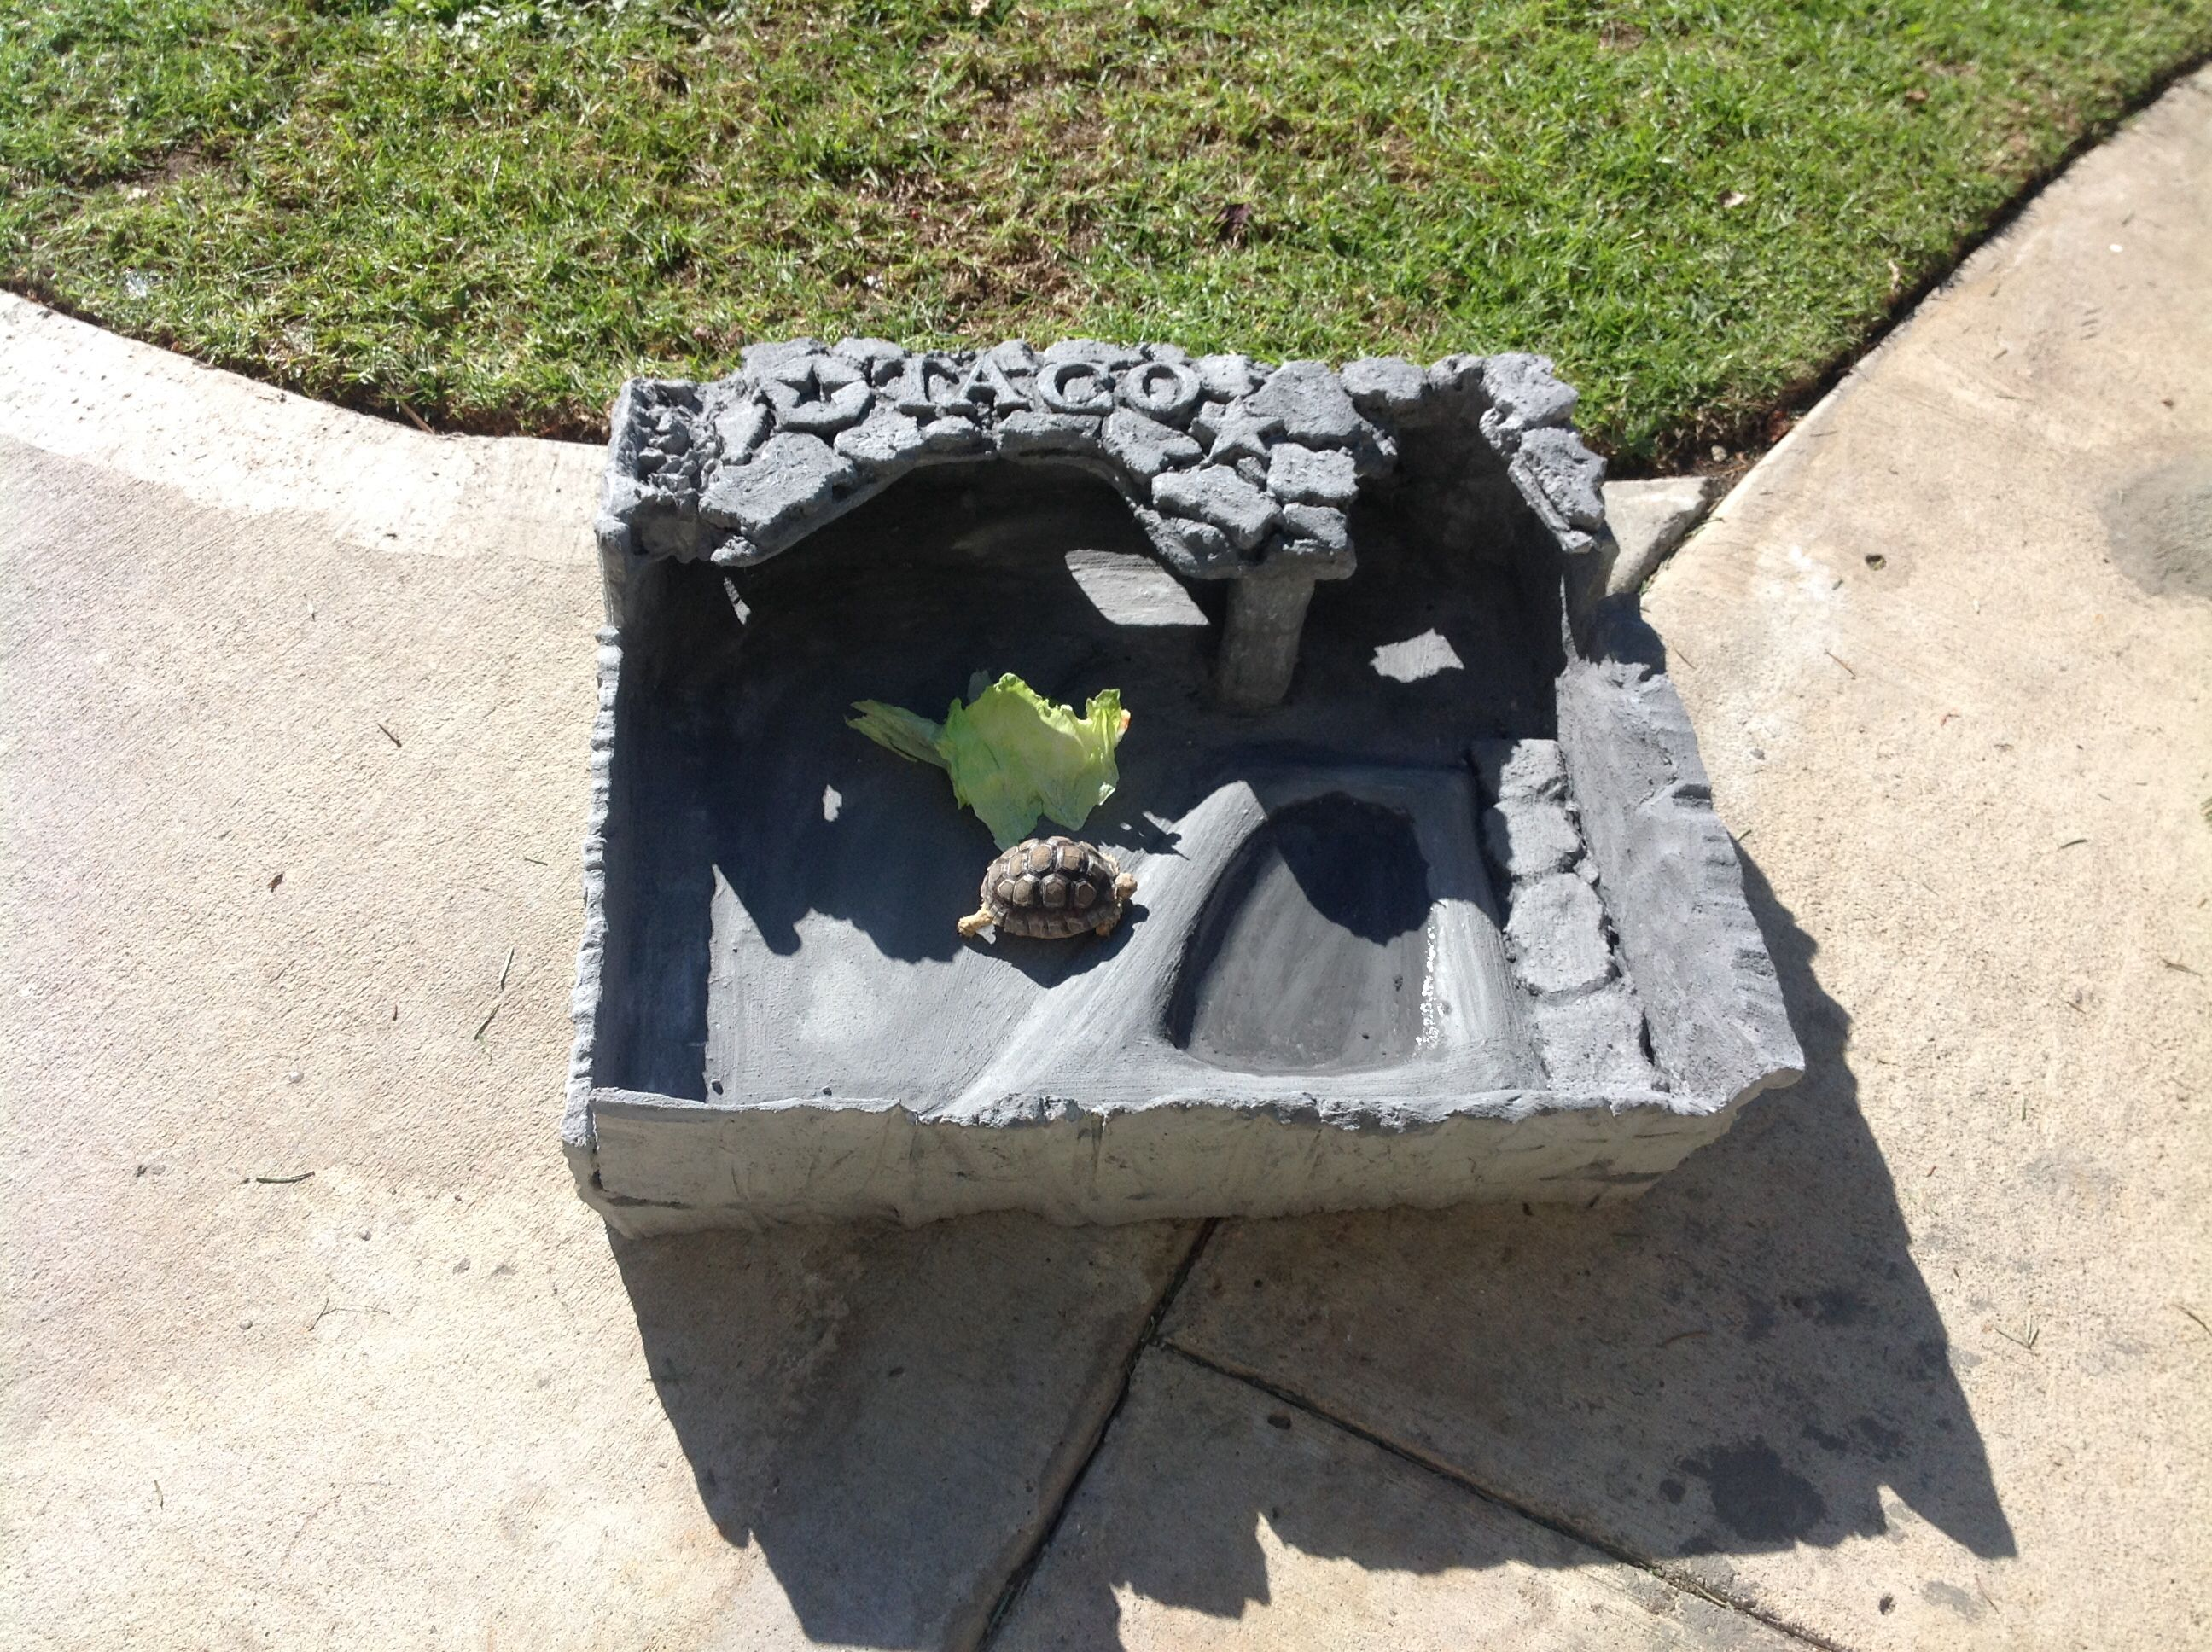 Tortoise habitat.  Made from eps foam and covered in foam coat to simulate stone.   Super light weight and durable.    Measures 24 by 24 inches.